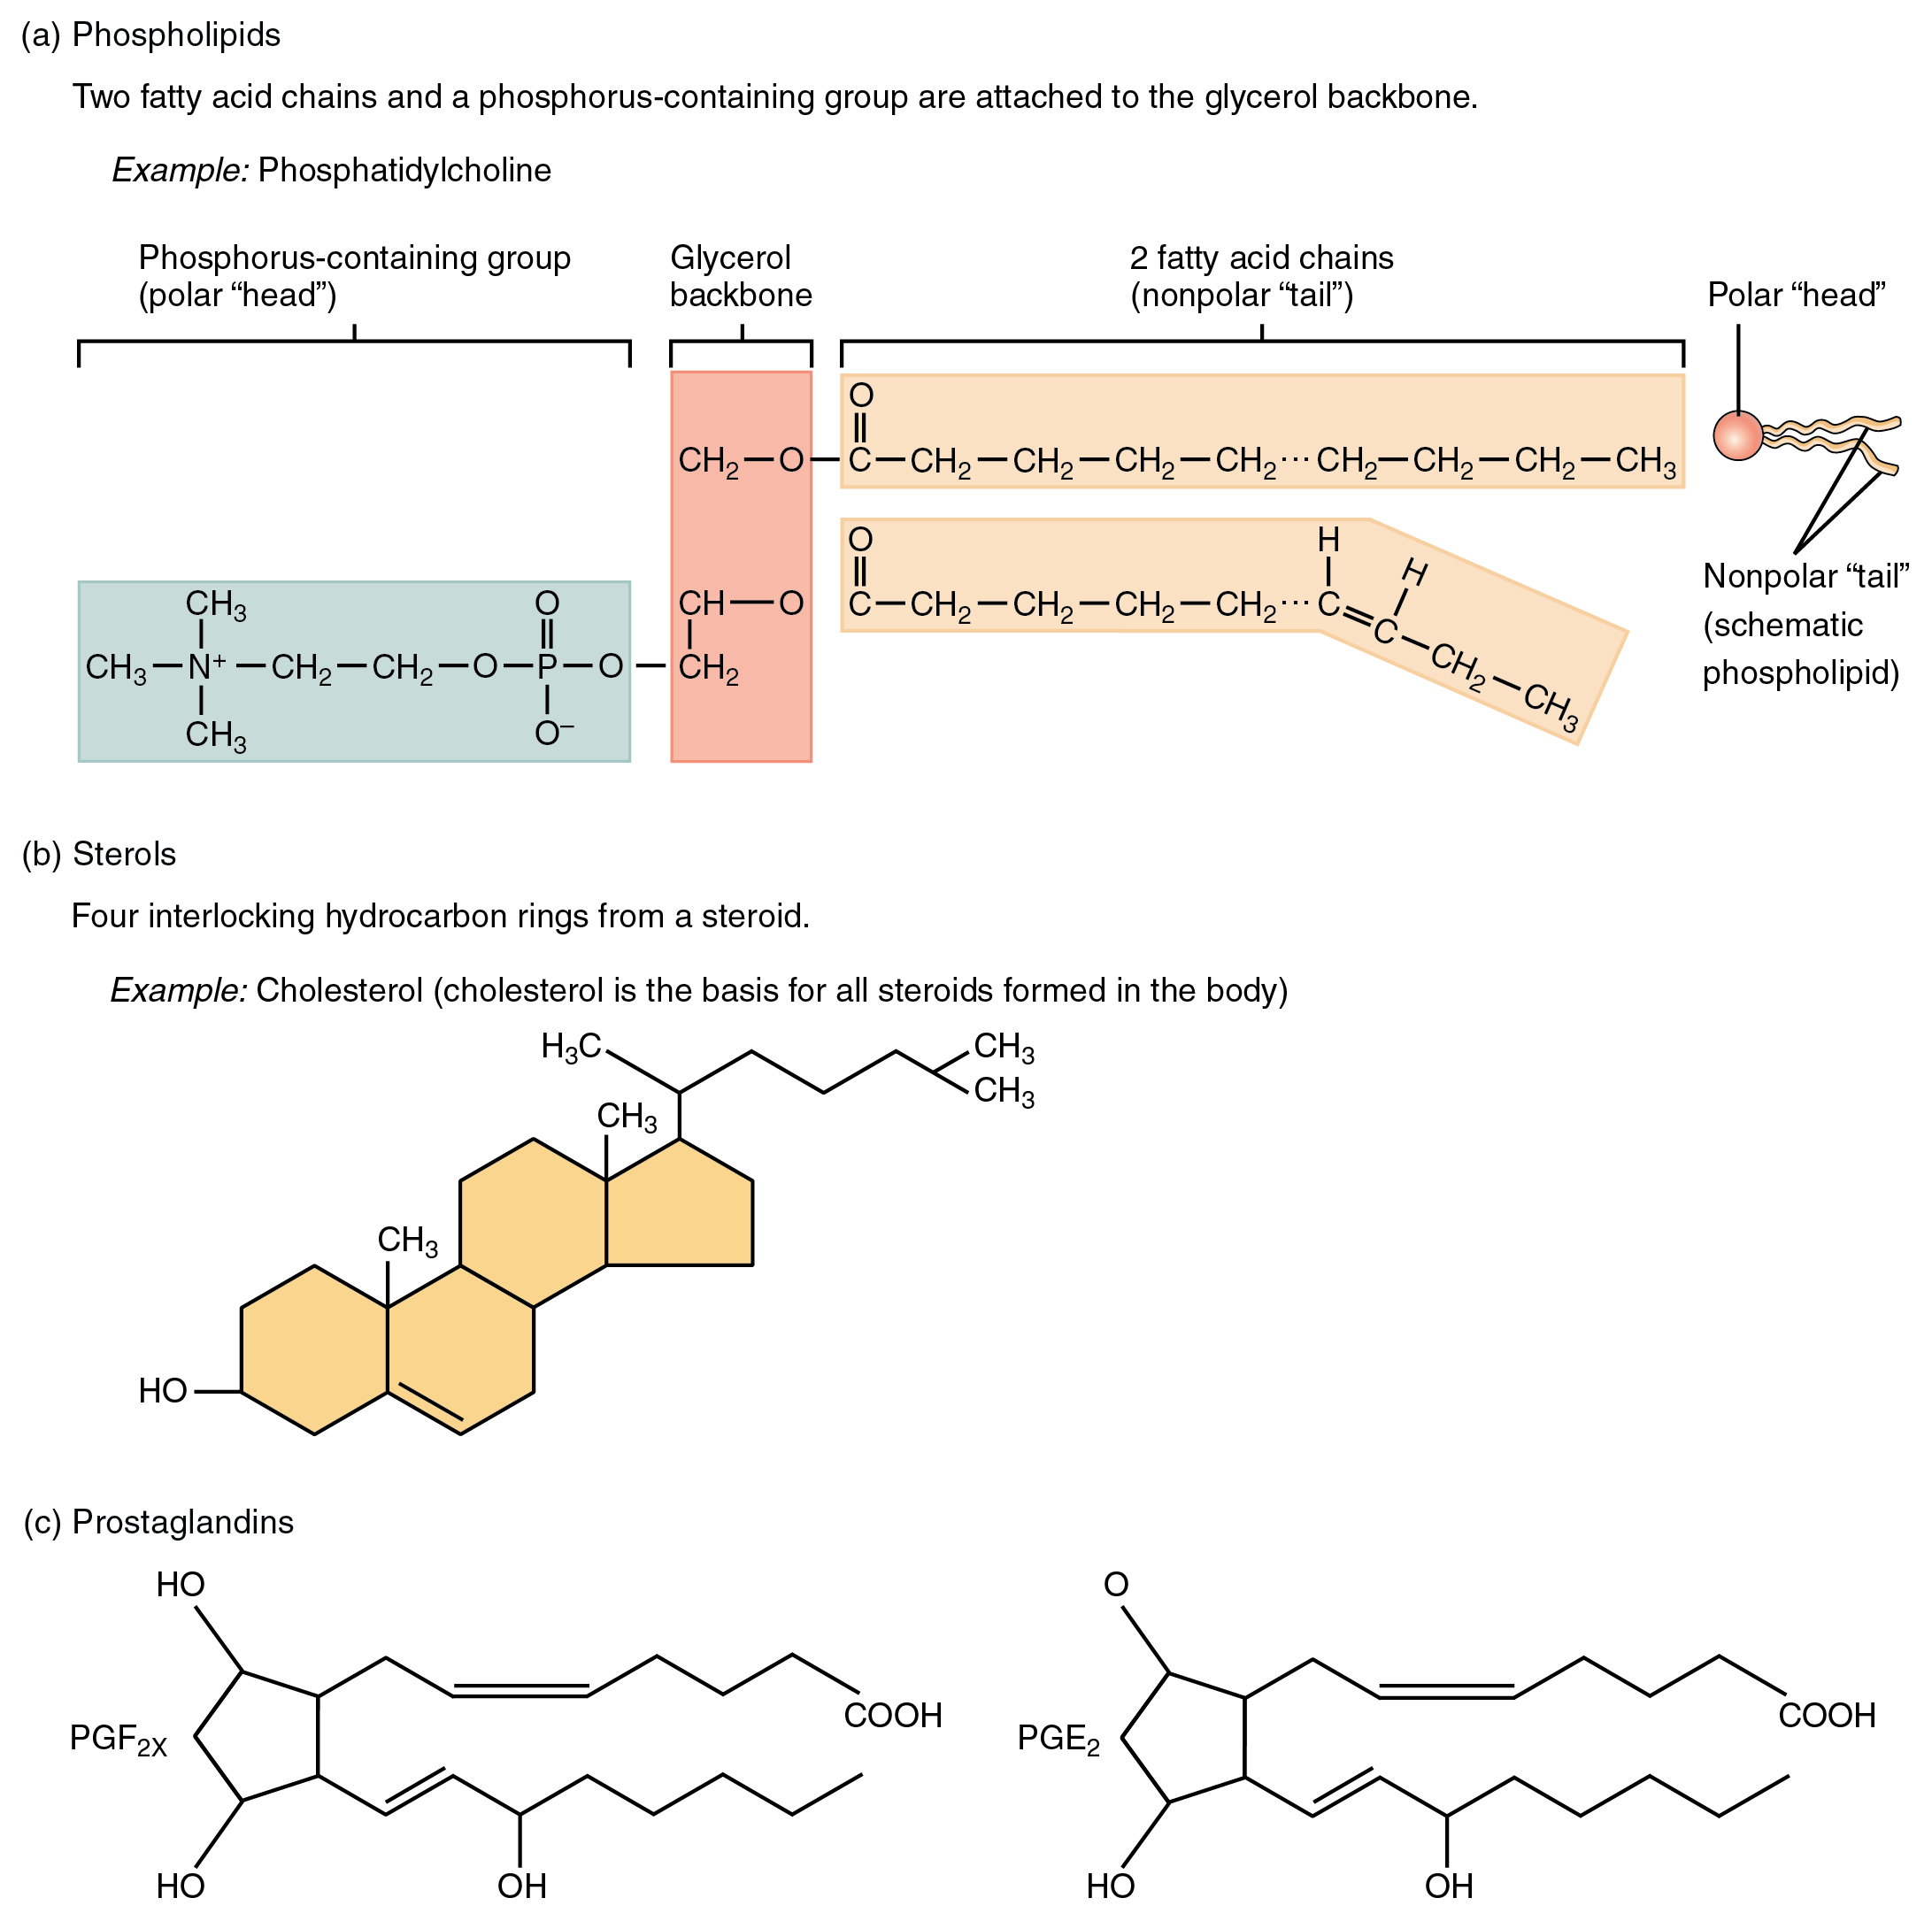 This figure shows the chemical structure of different lipids.